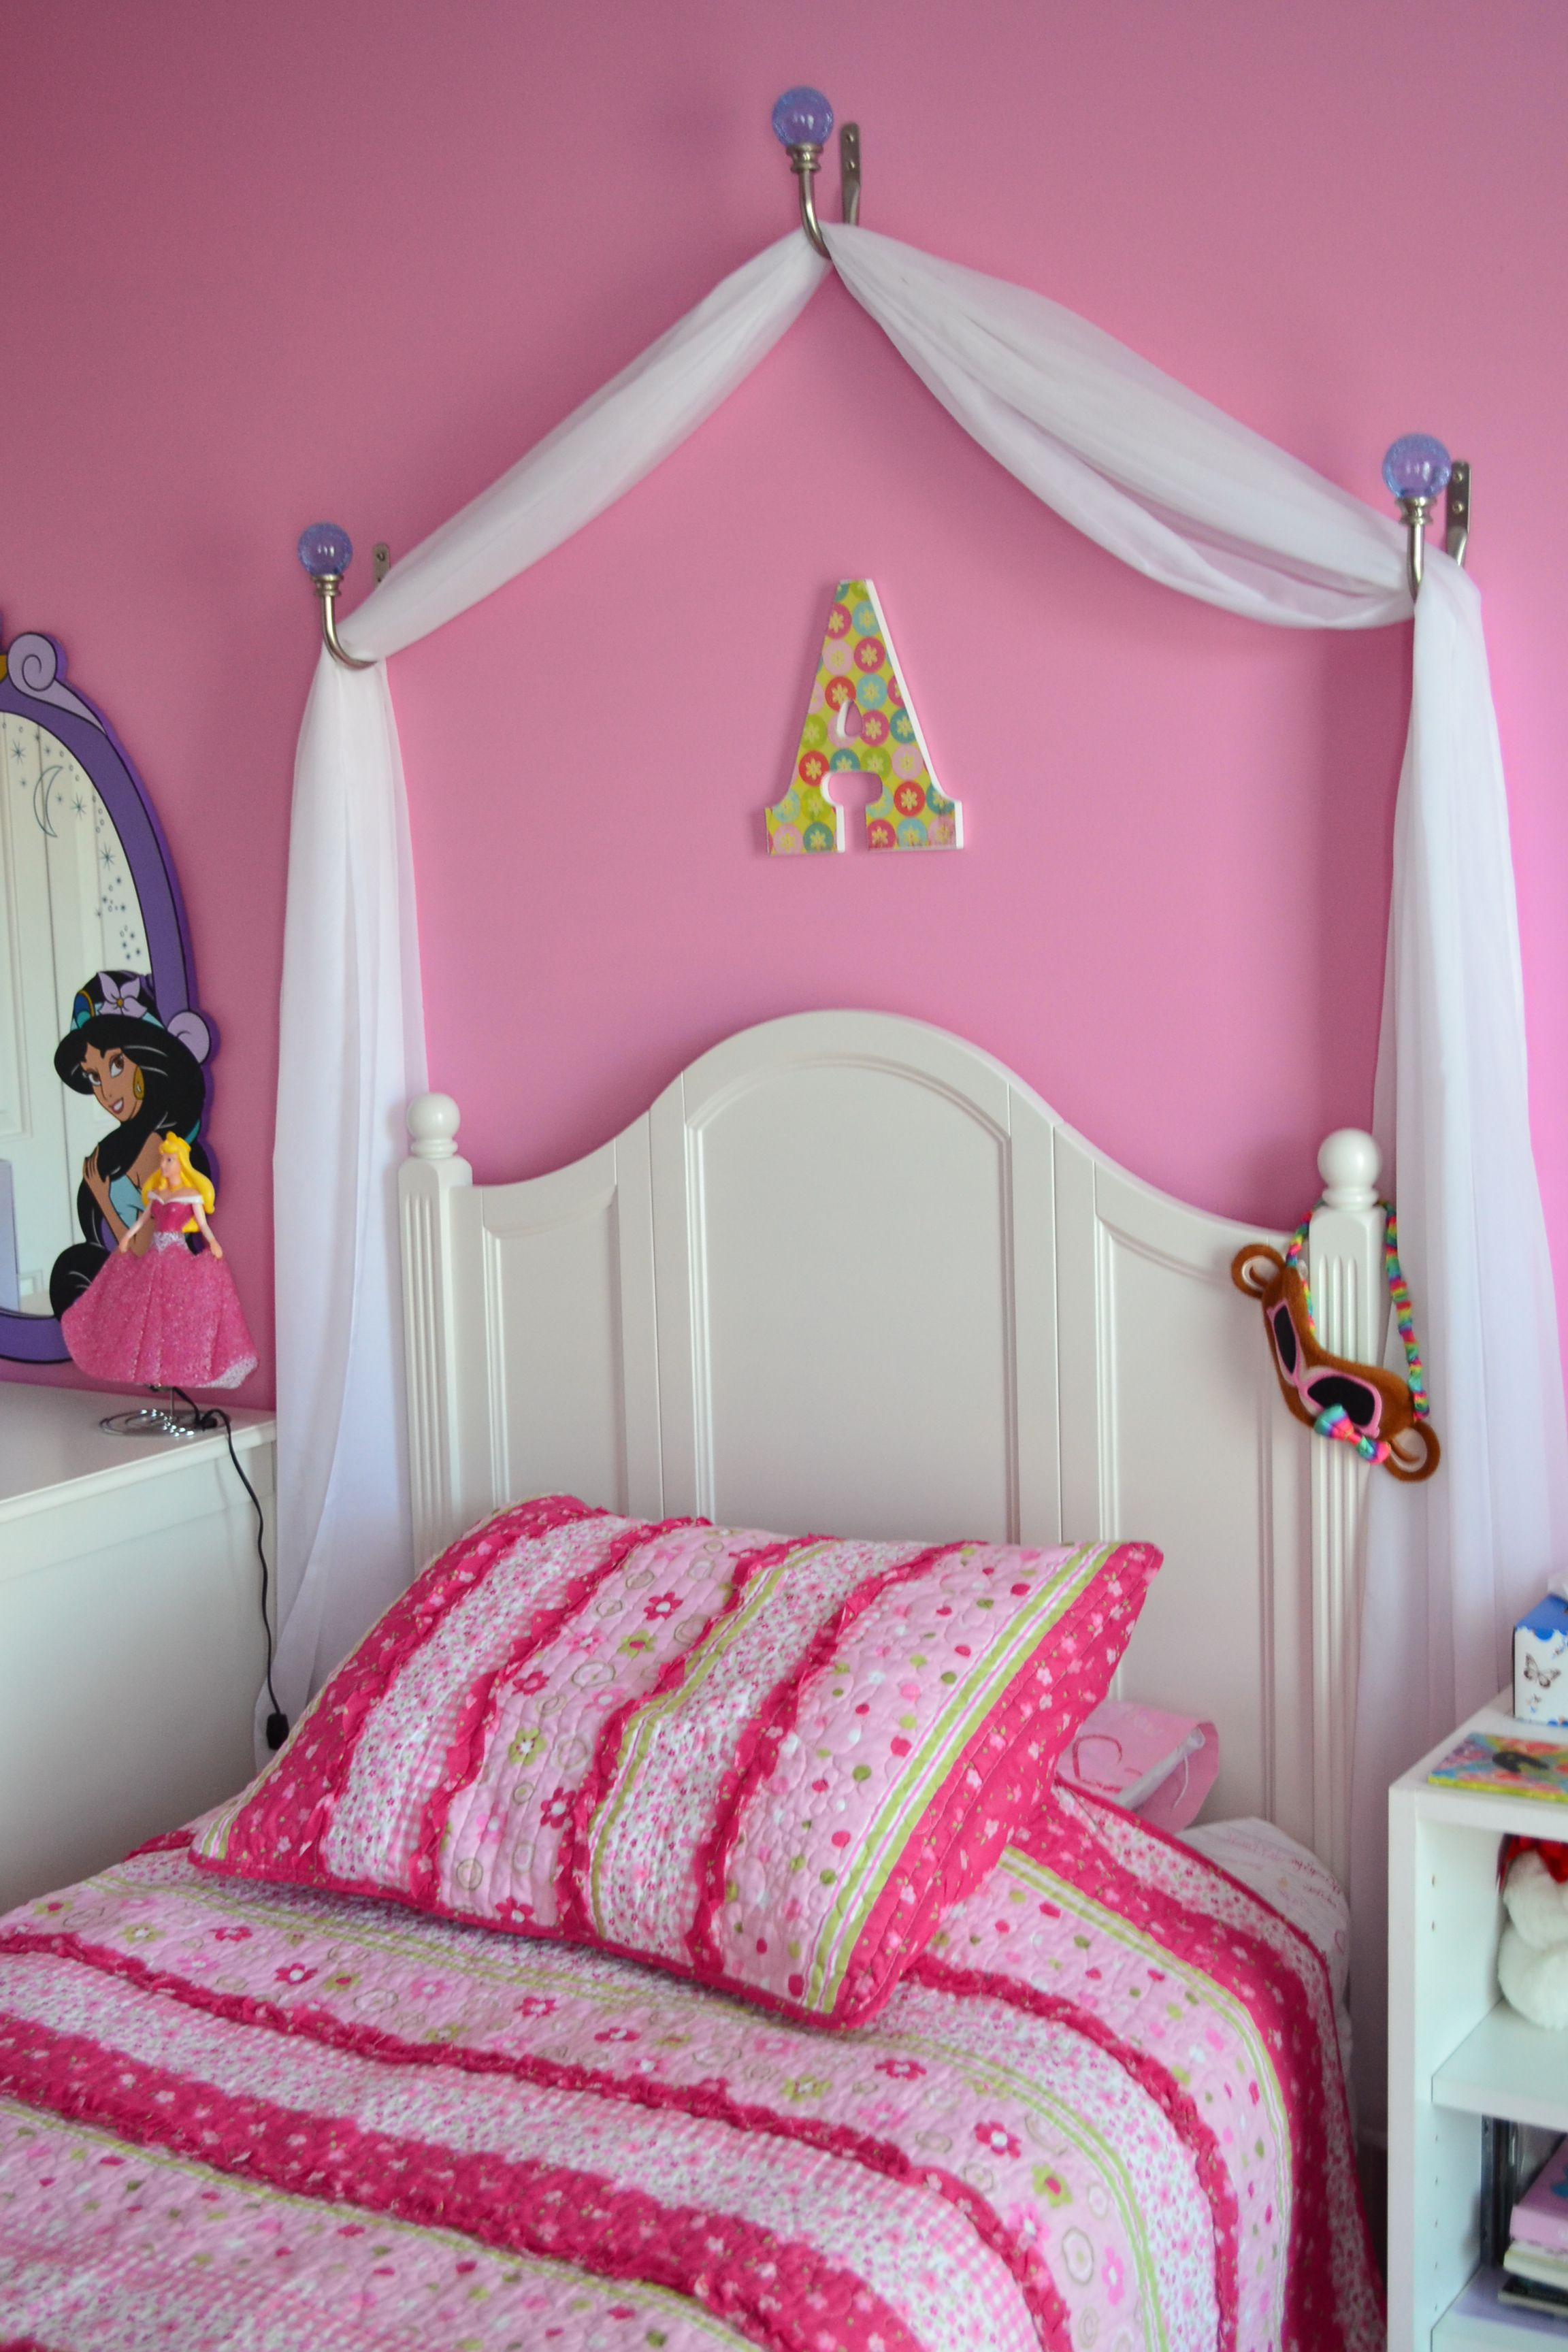 bedroom musicagainstviolence disney org creative decor furniture inspirational princess l